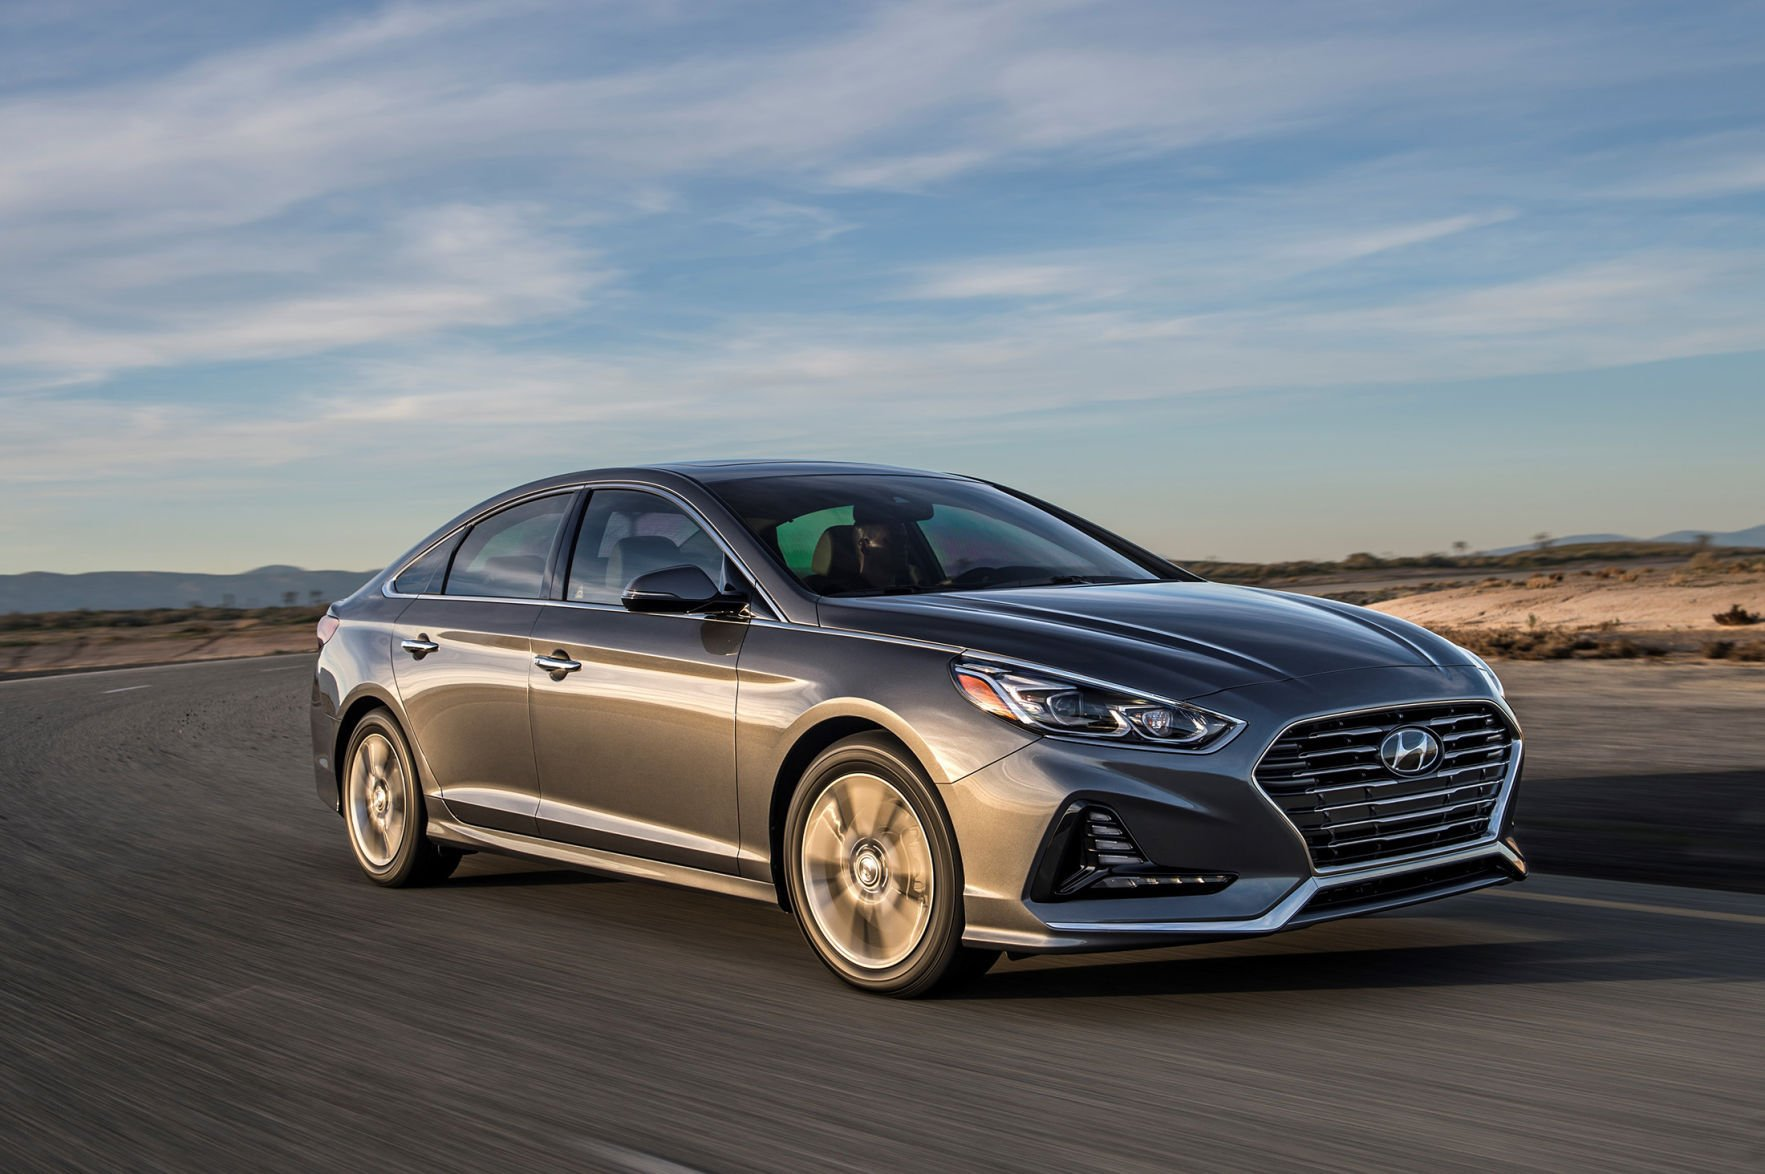 The Hyundai Sonata Gets A Dramatic Visual Makeover For 2018 That Makes It  Look Bold And Aggressive Once Again. Itu0027s The Most Distinctive Look For  This Car ...